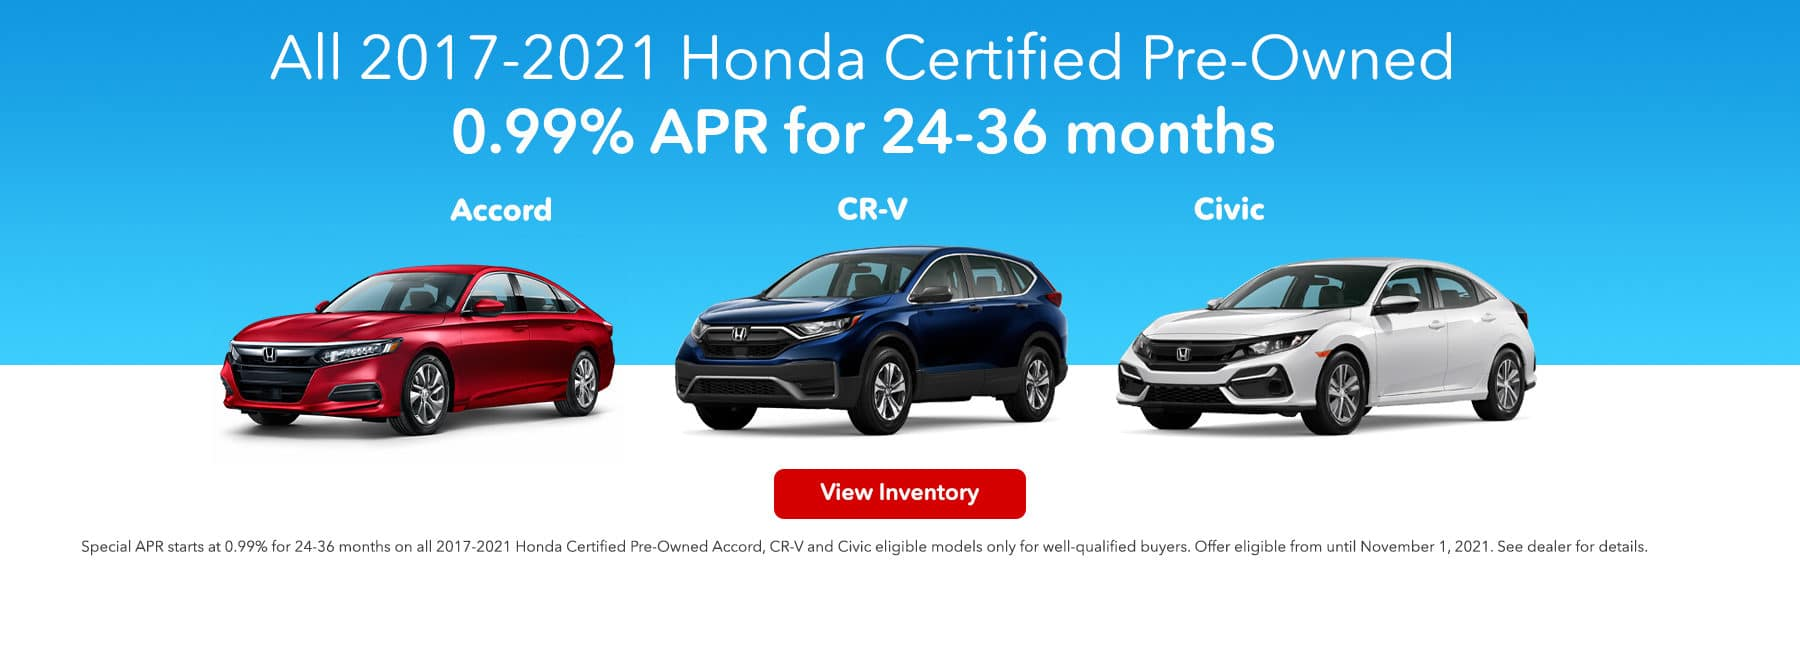 All2017-2021 Honda Certified Pre-Owned Accord, CR-V and Civic 0.99% for 24-36 months